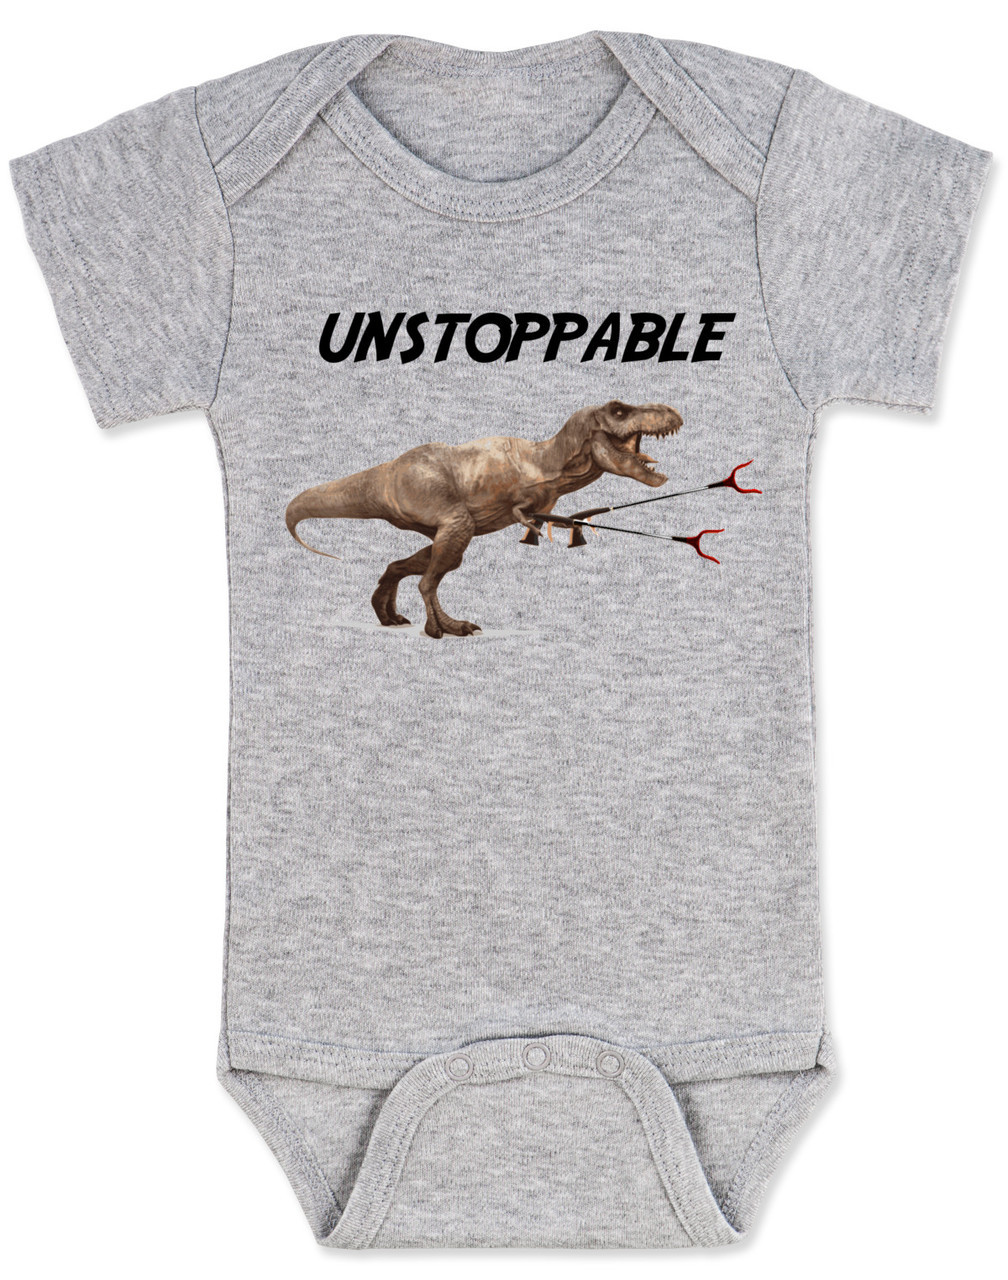 Dinosaur Unstoppable T-Rex Baby Sleeveless Bodysuits Unisex Cute Lap Shoulder Onesies White